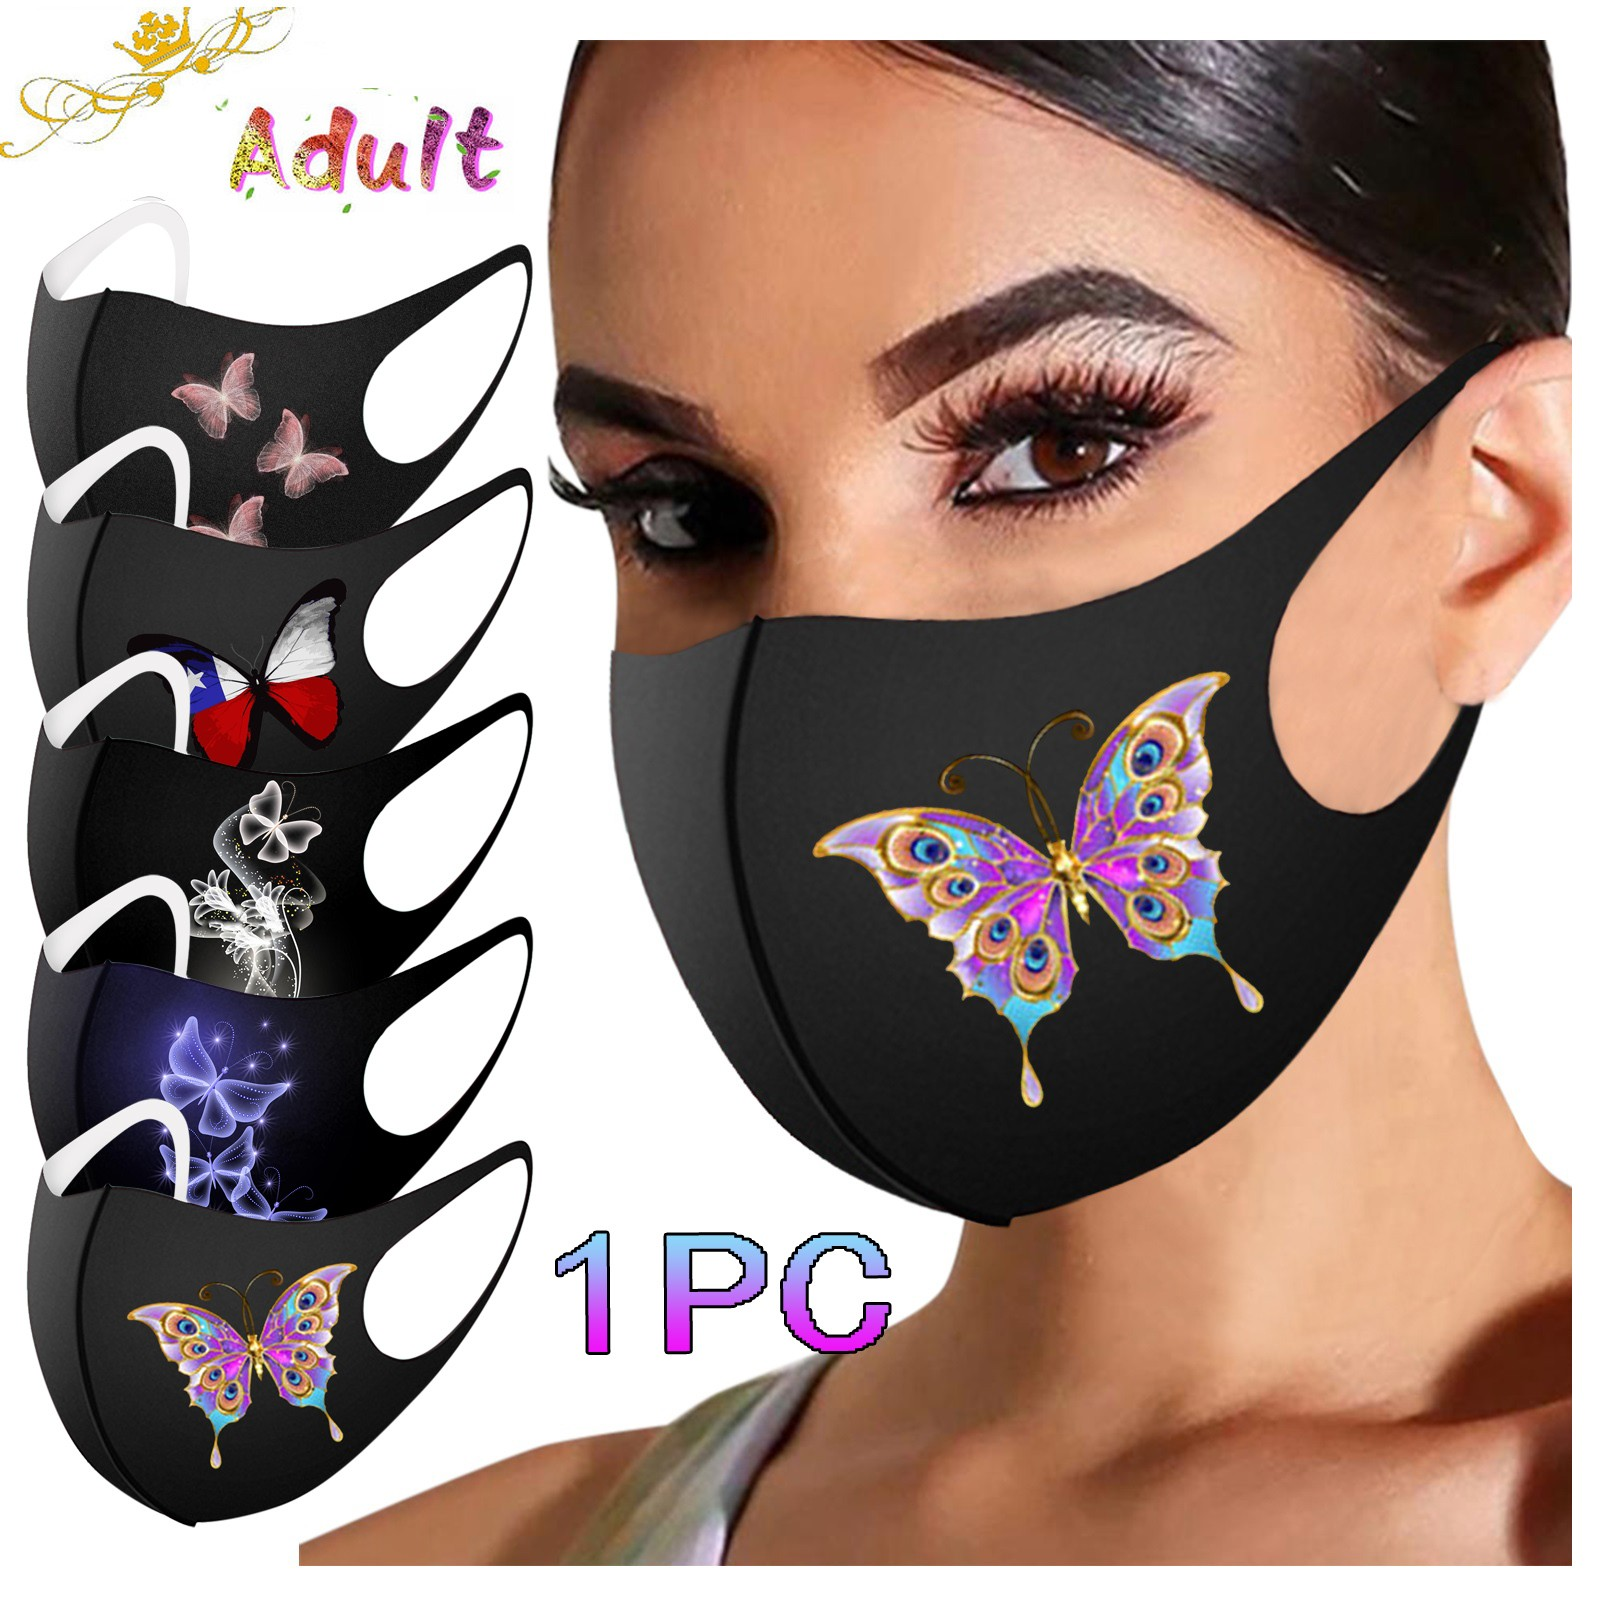 Headband masques mondkapjes Adult Mask Printed Mask for Protection Washable FaceMask mascarillas lav